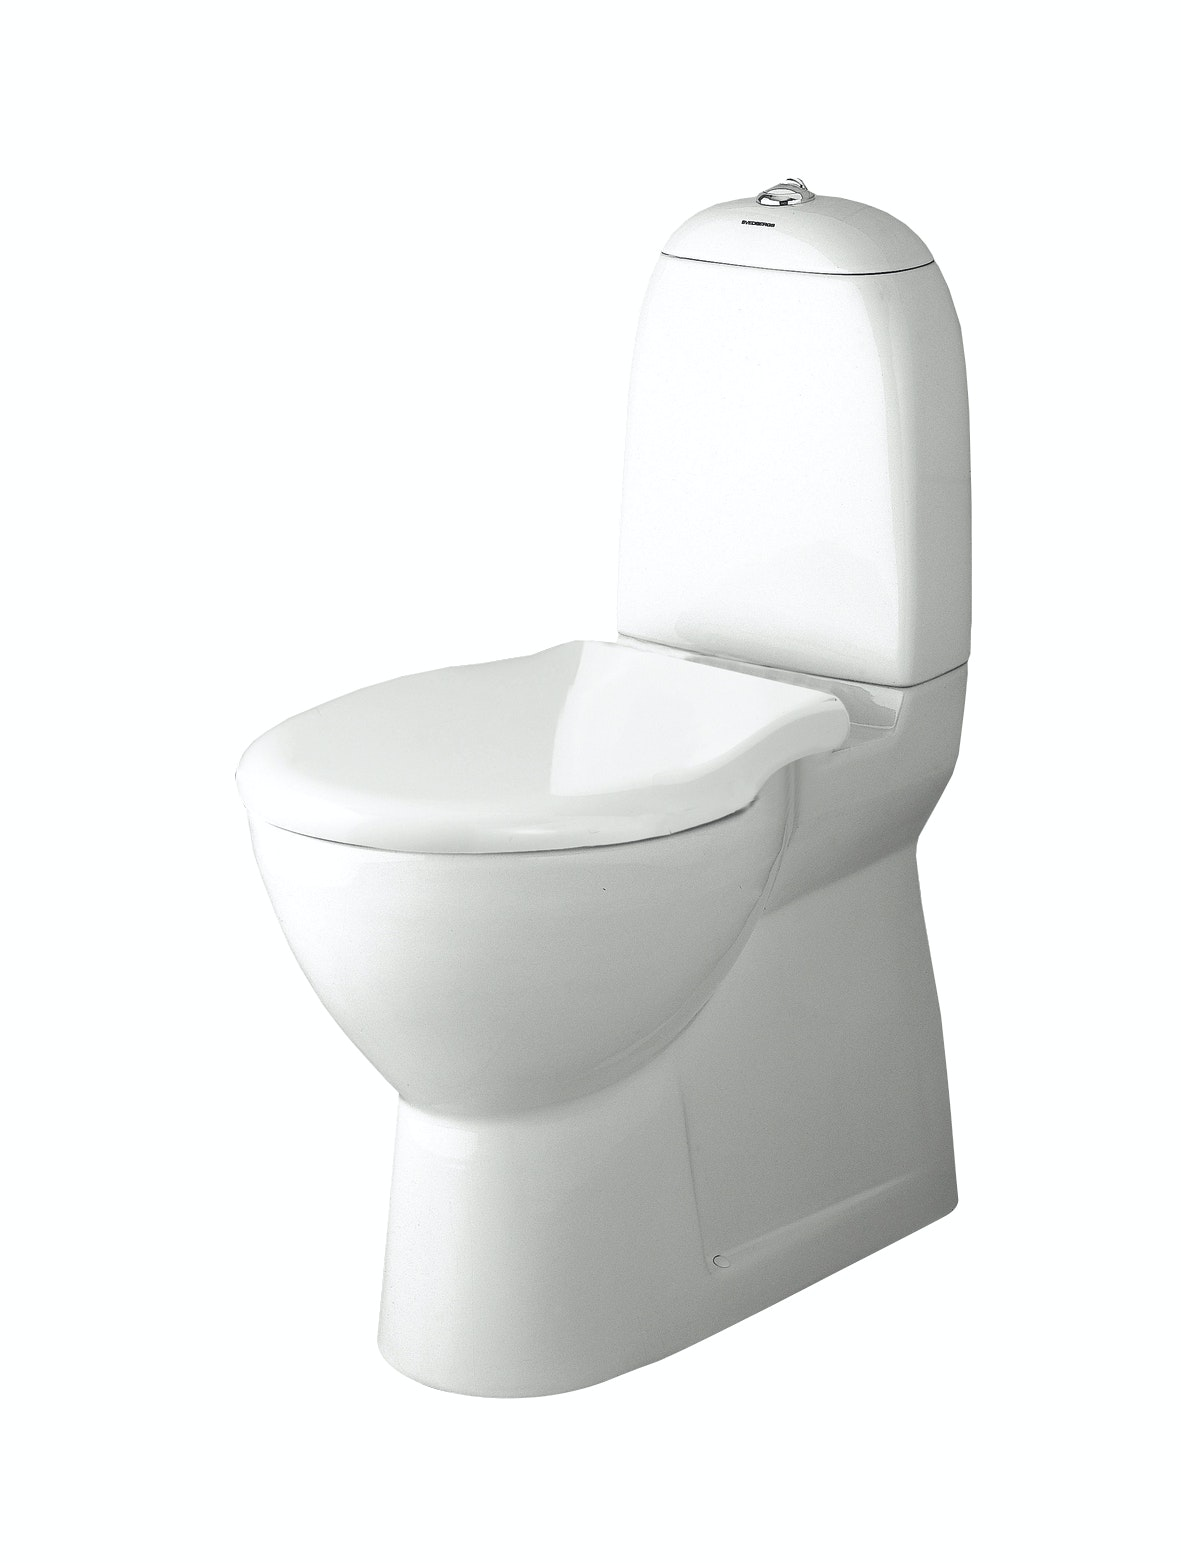 Wc-Sits Svedbergs 90239 Till Wc 9023,9029,9073